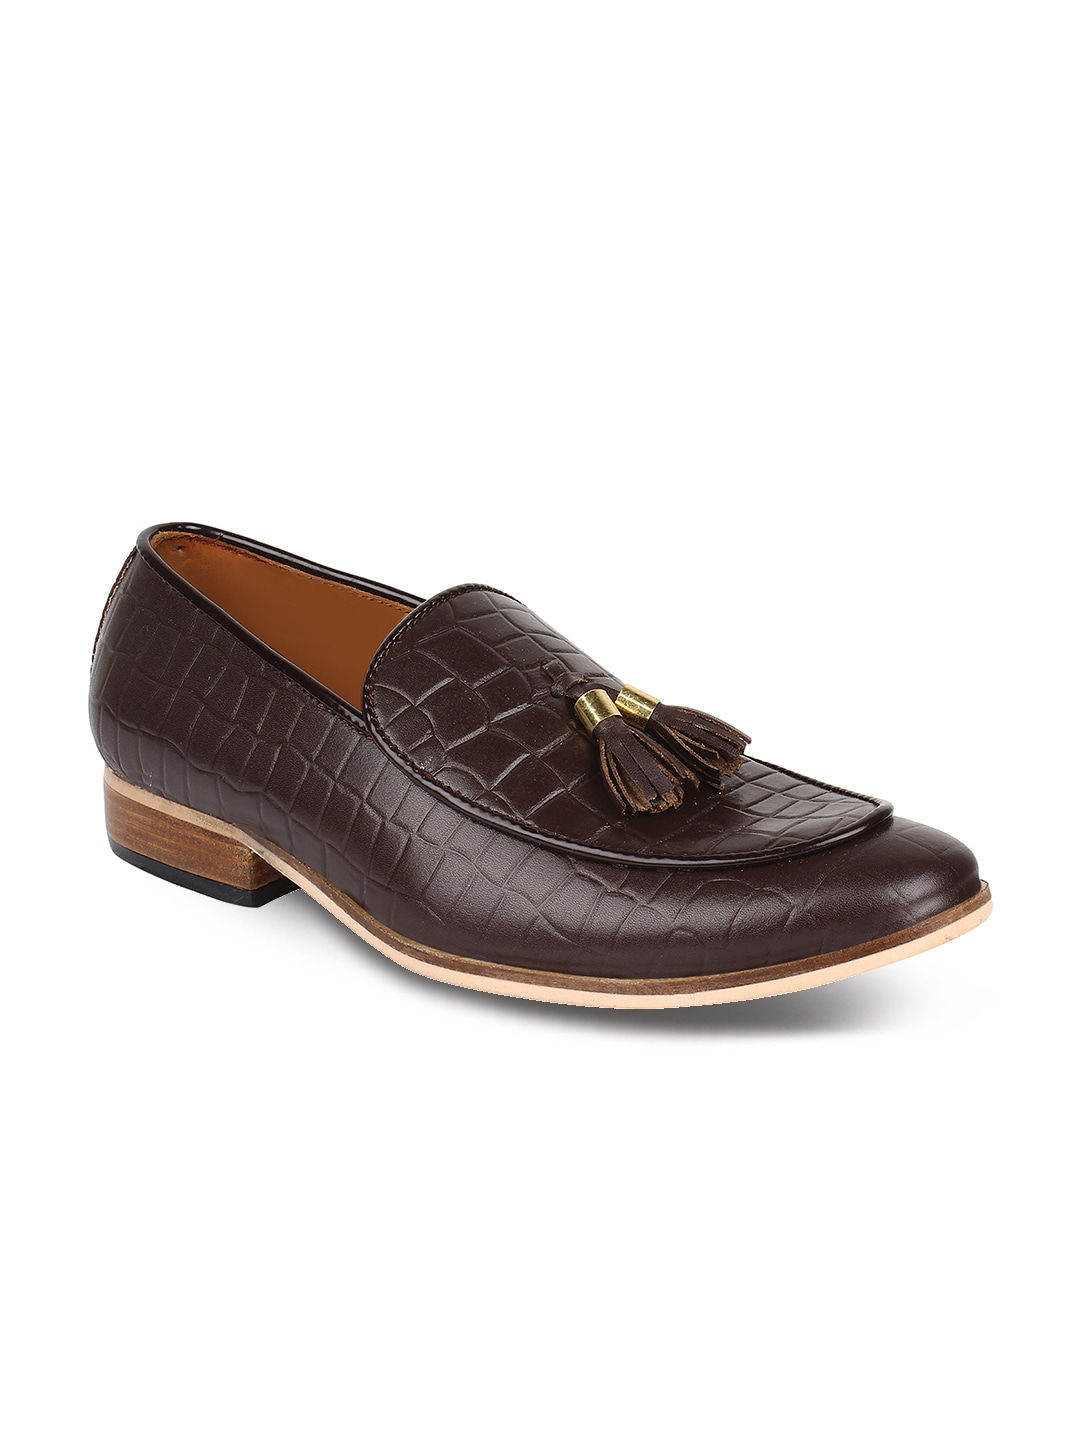 620315957 Shoes - Buy Shoes for Men